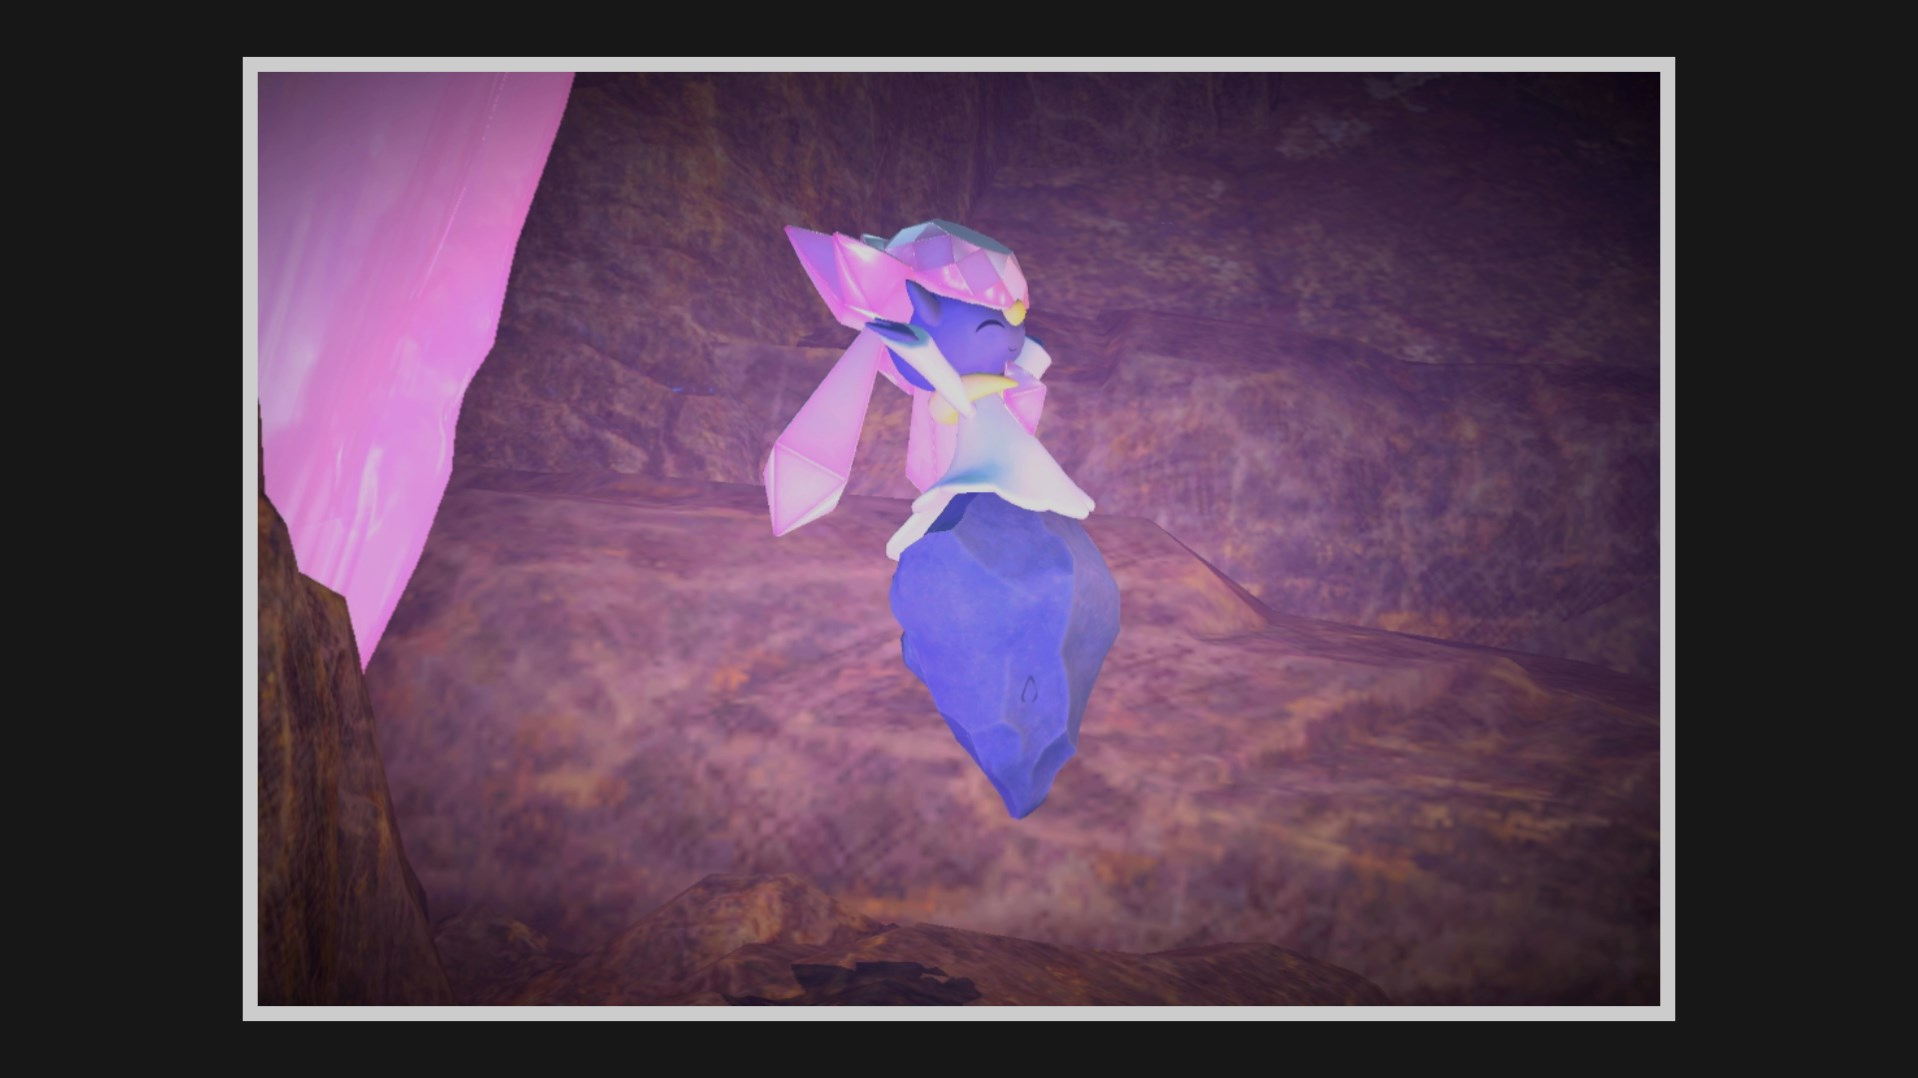 Diancie cheers happily, glowing pink in a cave